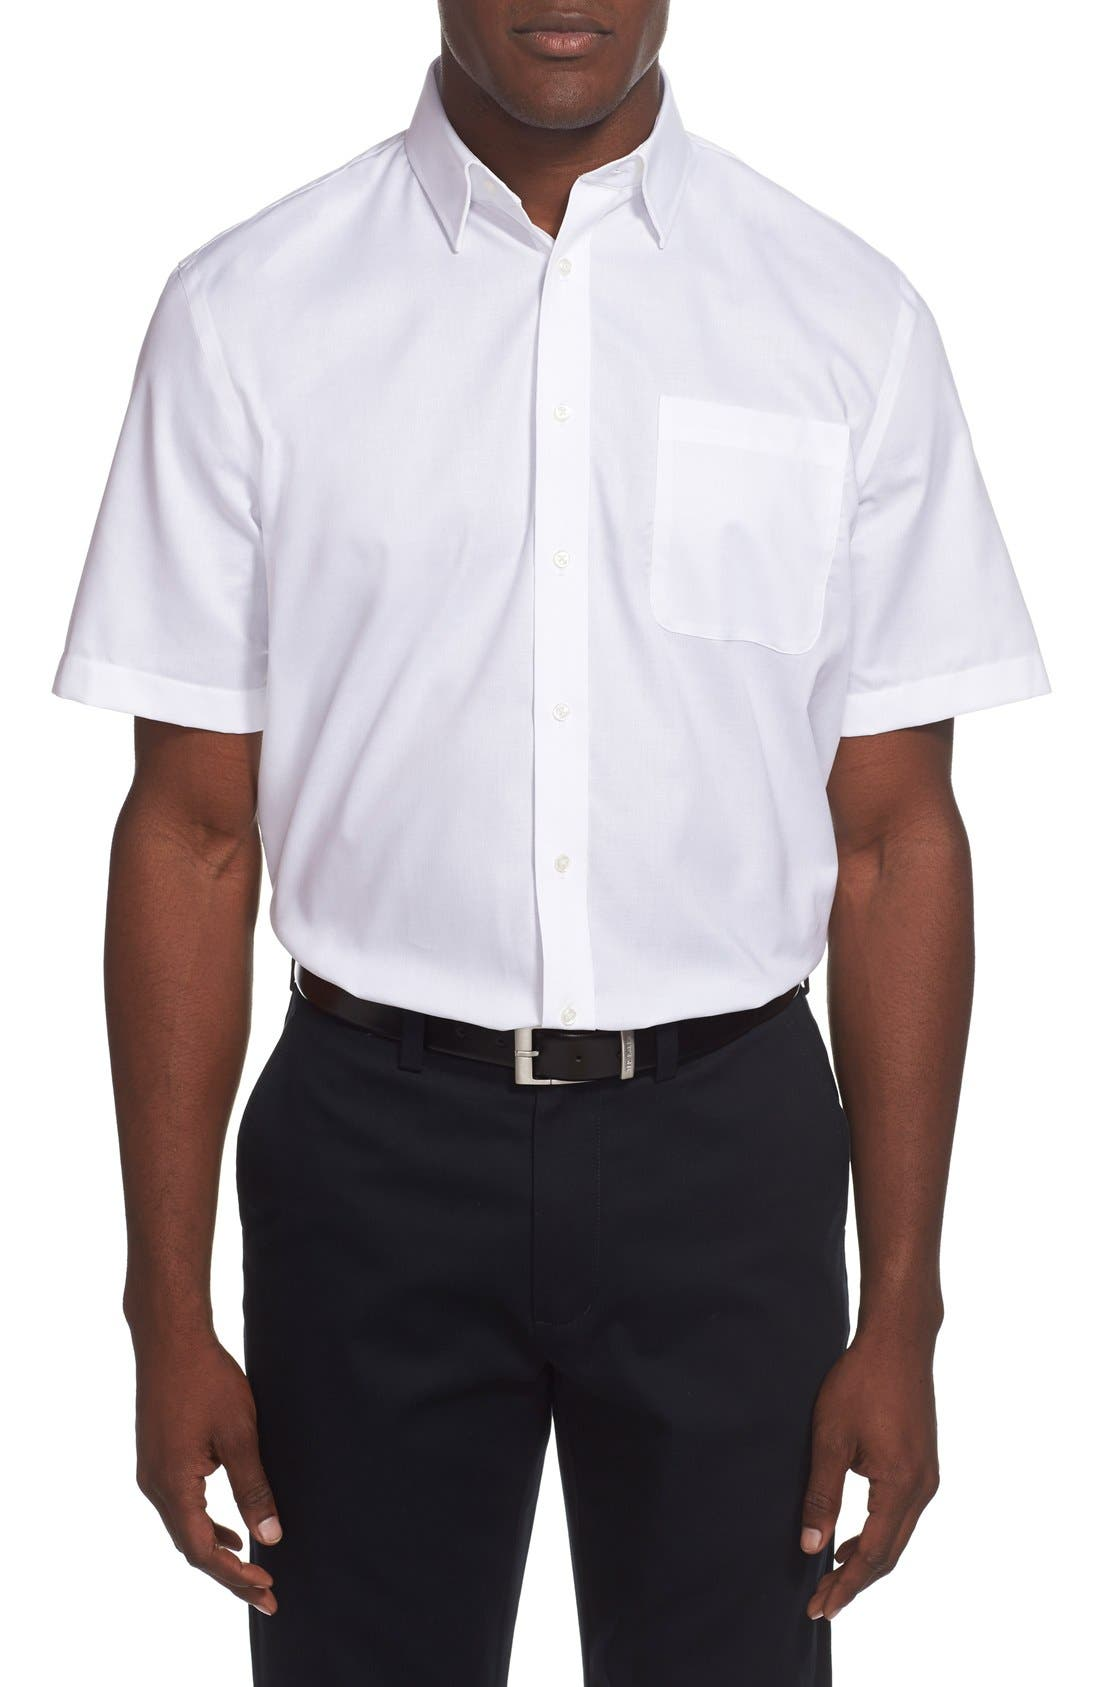 Alternate Image 2  - Nordstrom Men's Shop Traditional Fit Non-Iron Short Sleeve Dress Shirt